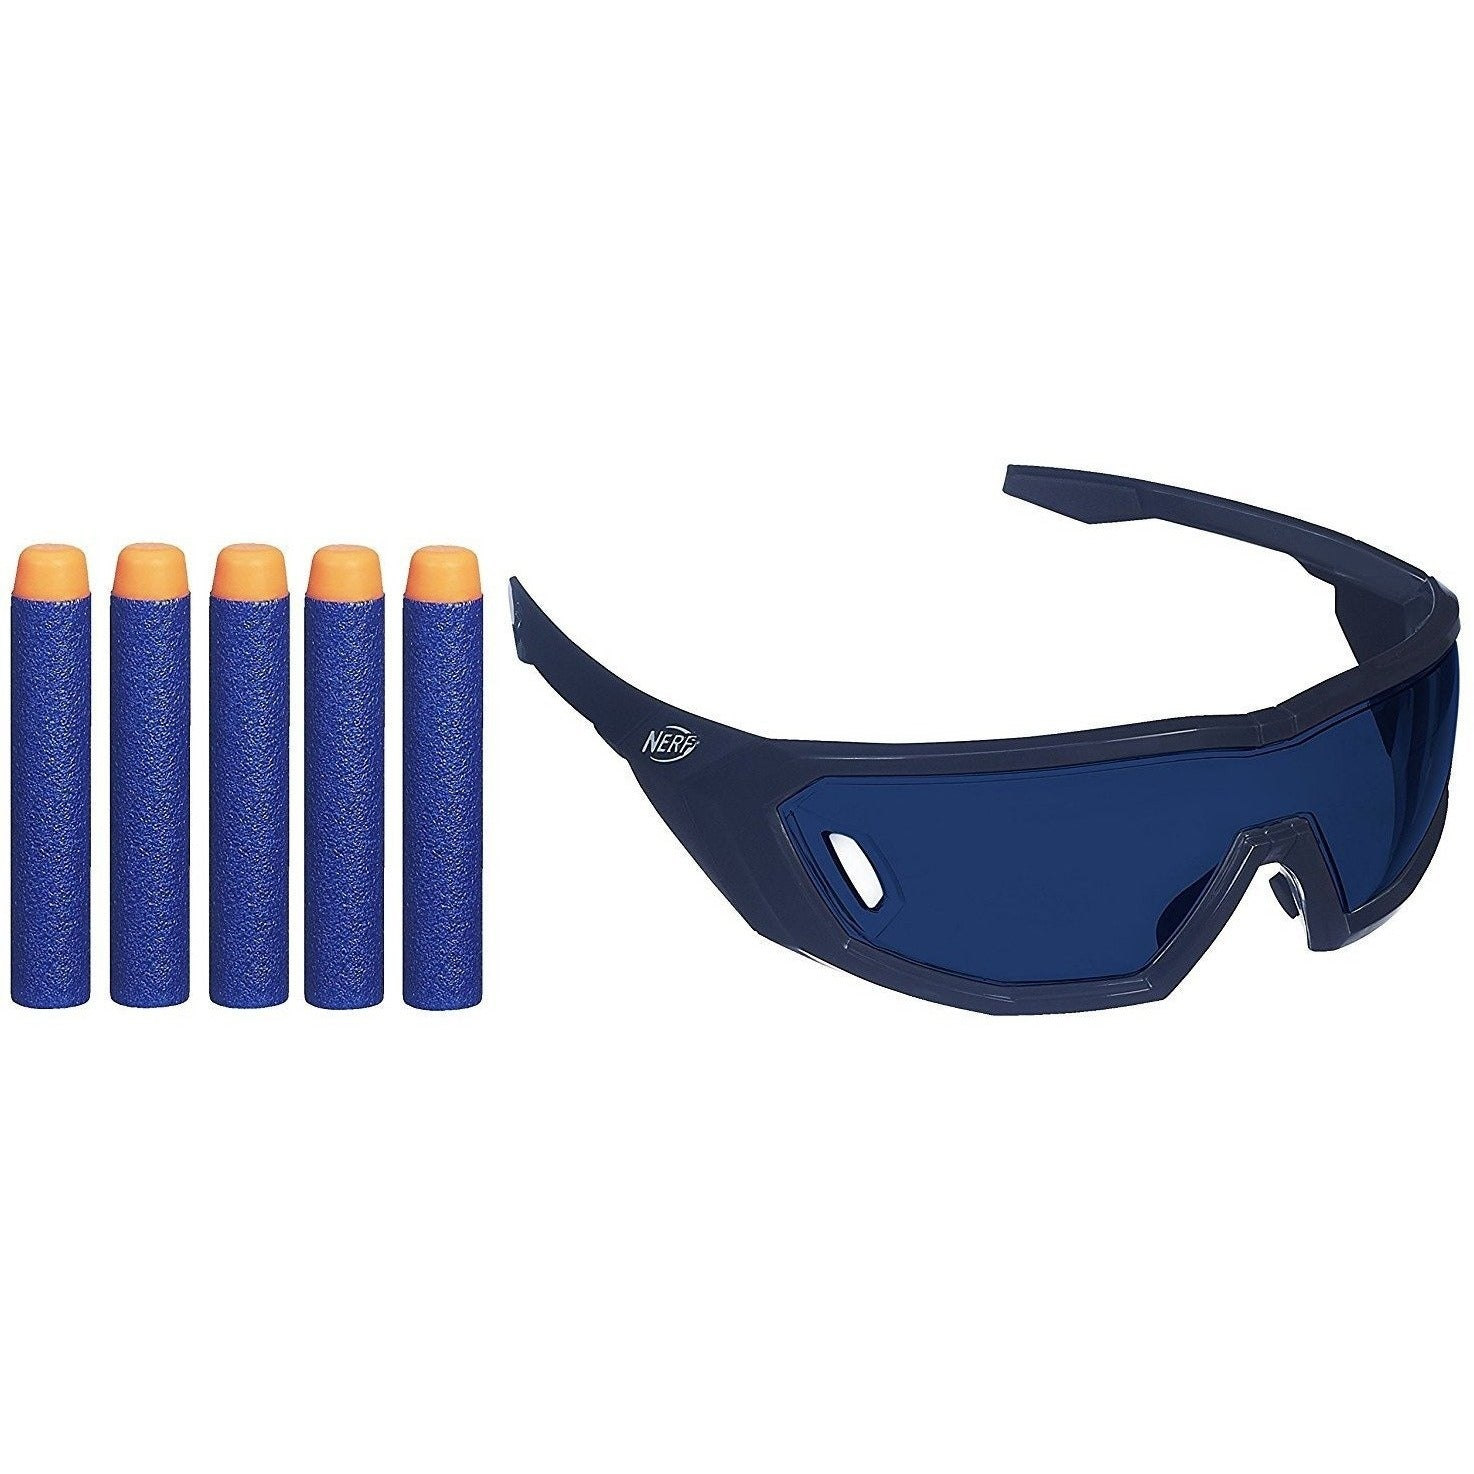 Nerf N Strike Elite Series Vision Gear